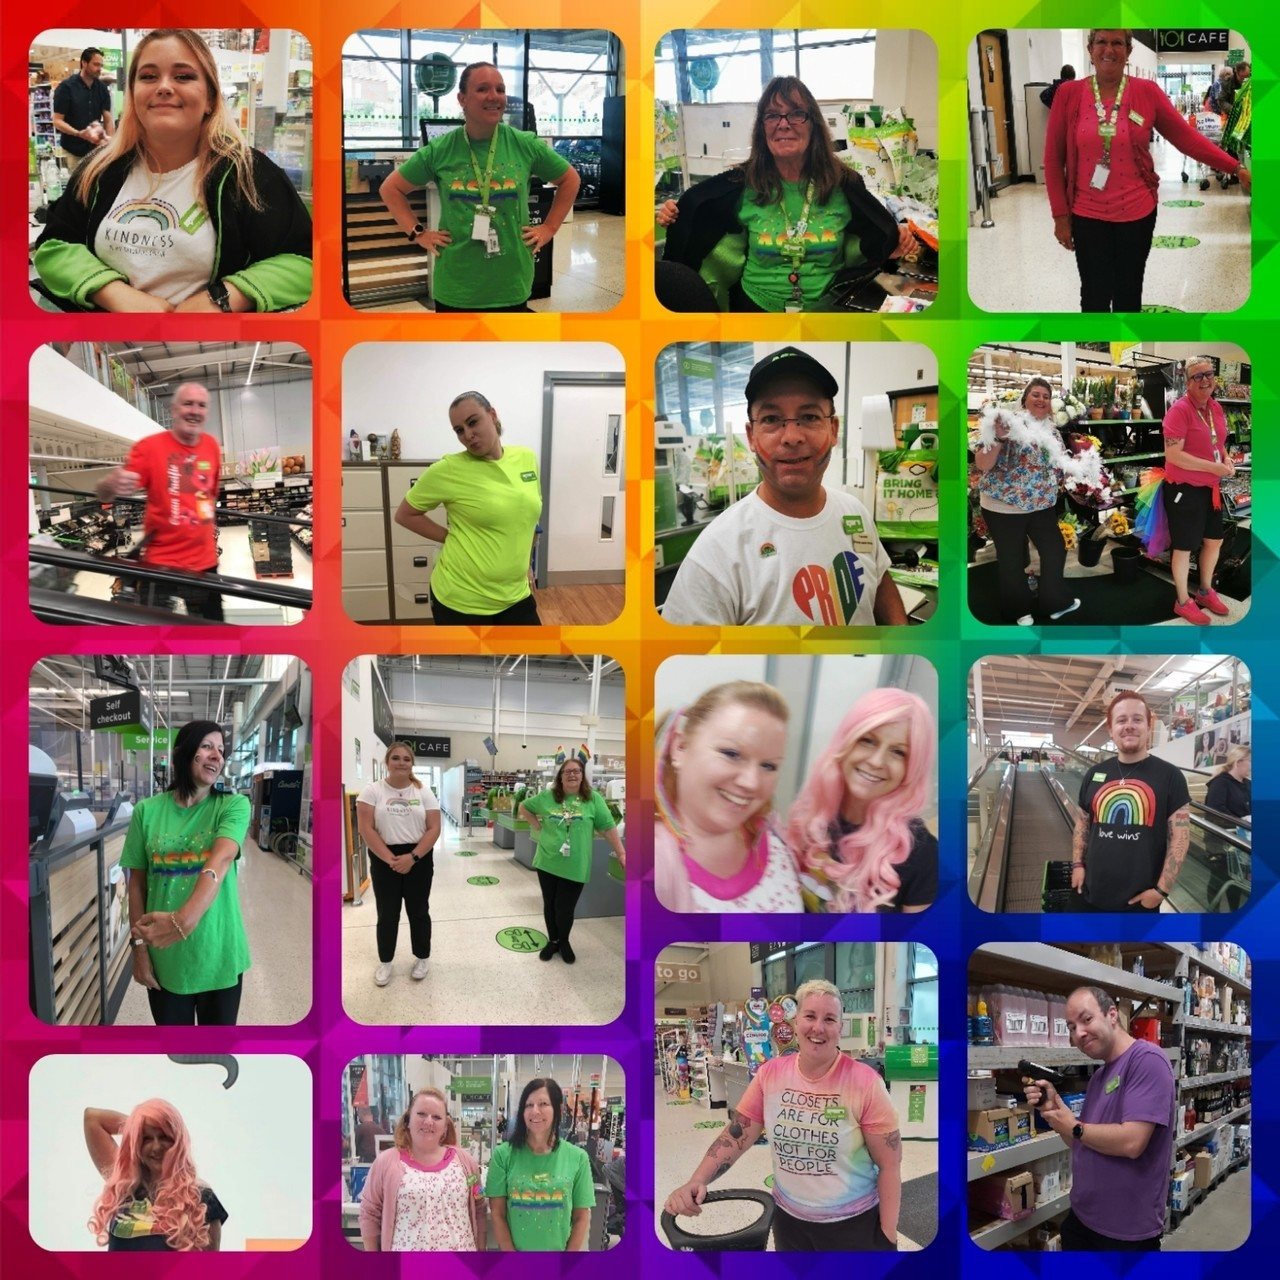 All dressed up for Pride weekend  | Asda St Leonards on Sea